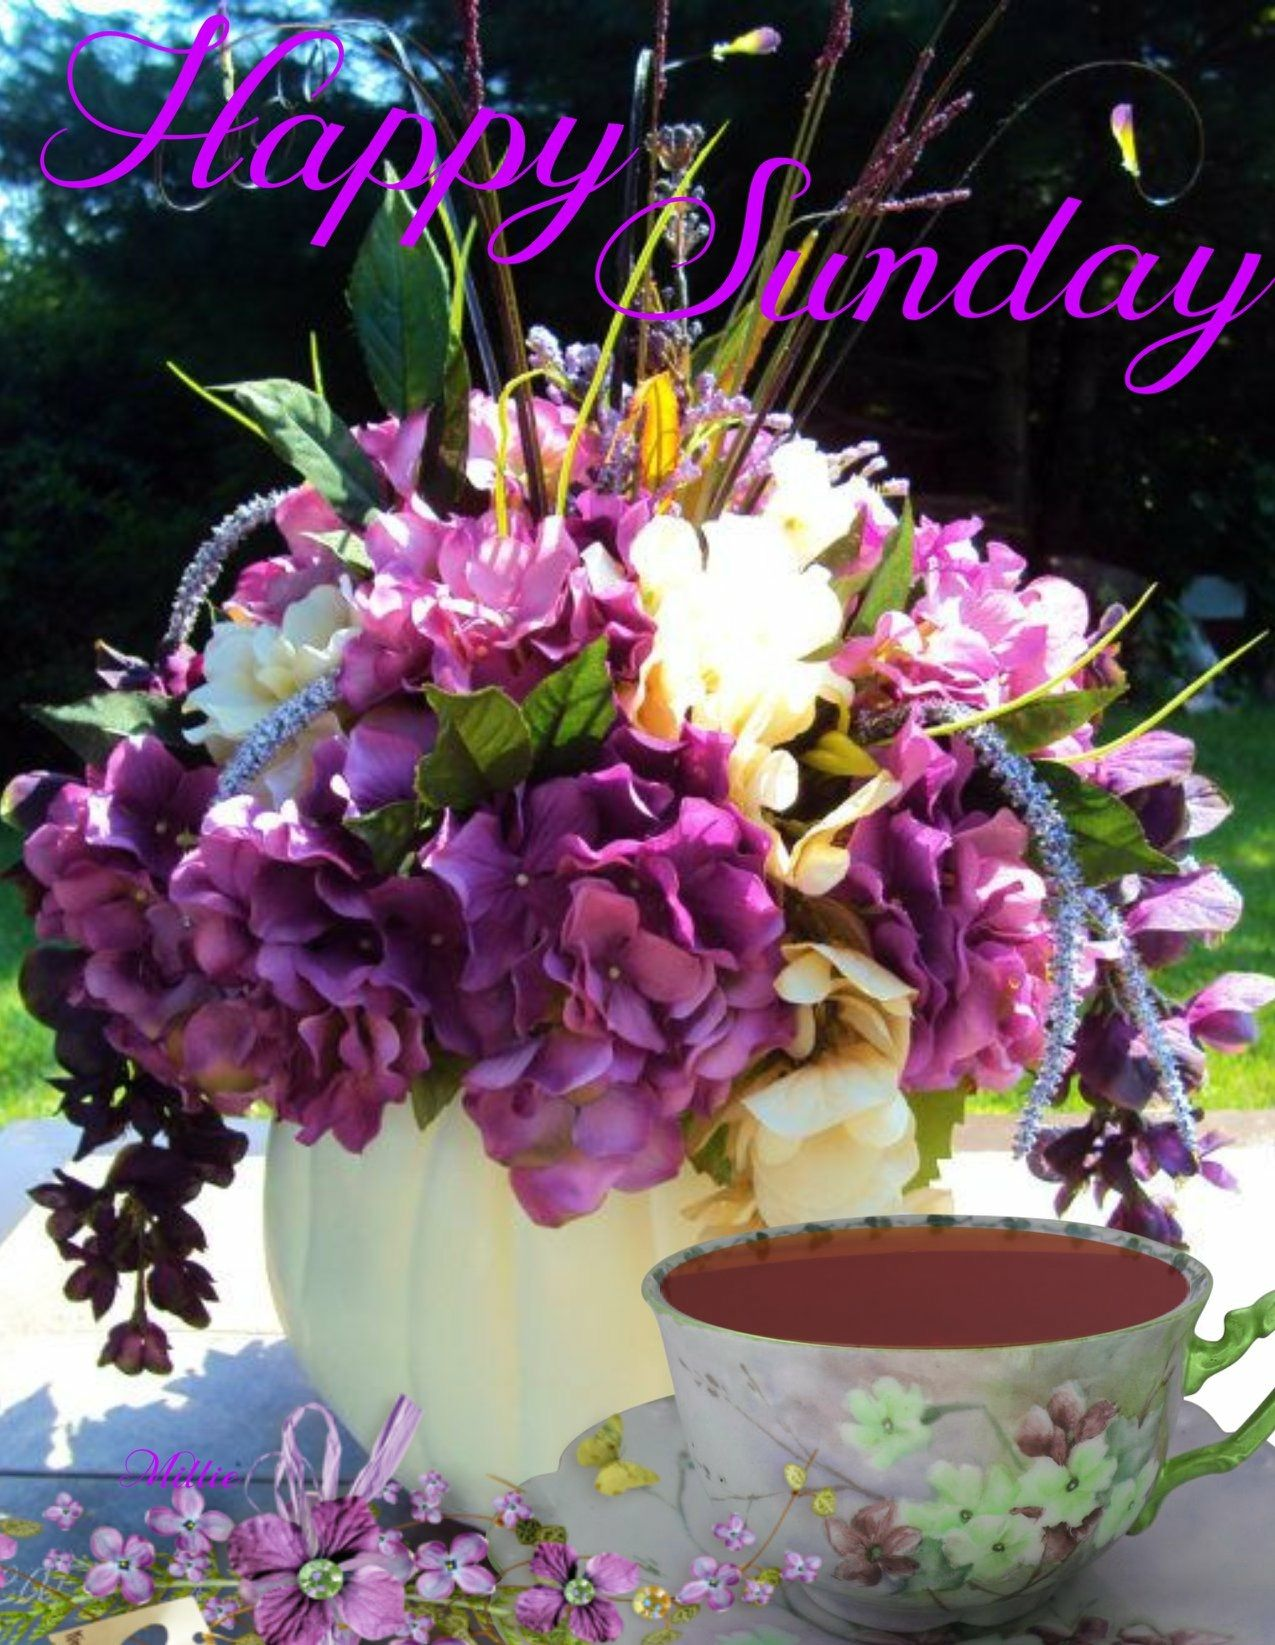 Pin By Joyce Turner On Happy Sunday Quotes Wedding Table Centerpieces Purple Table Flowers Purple Centerpieces